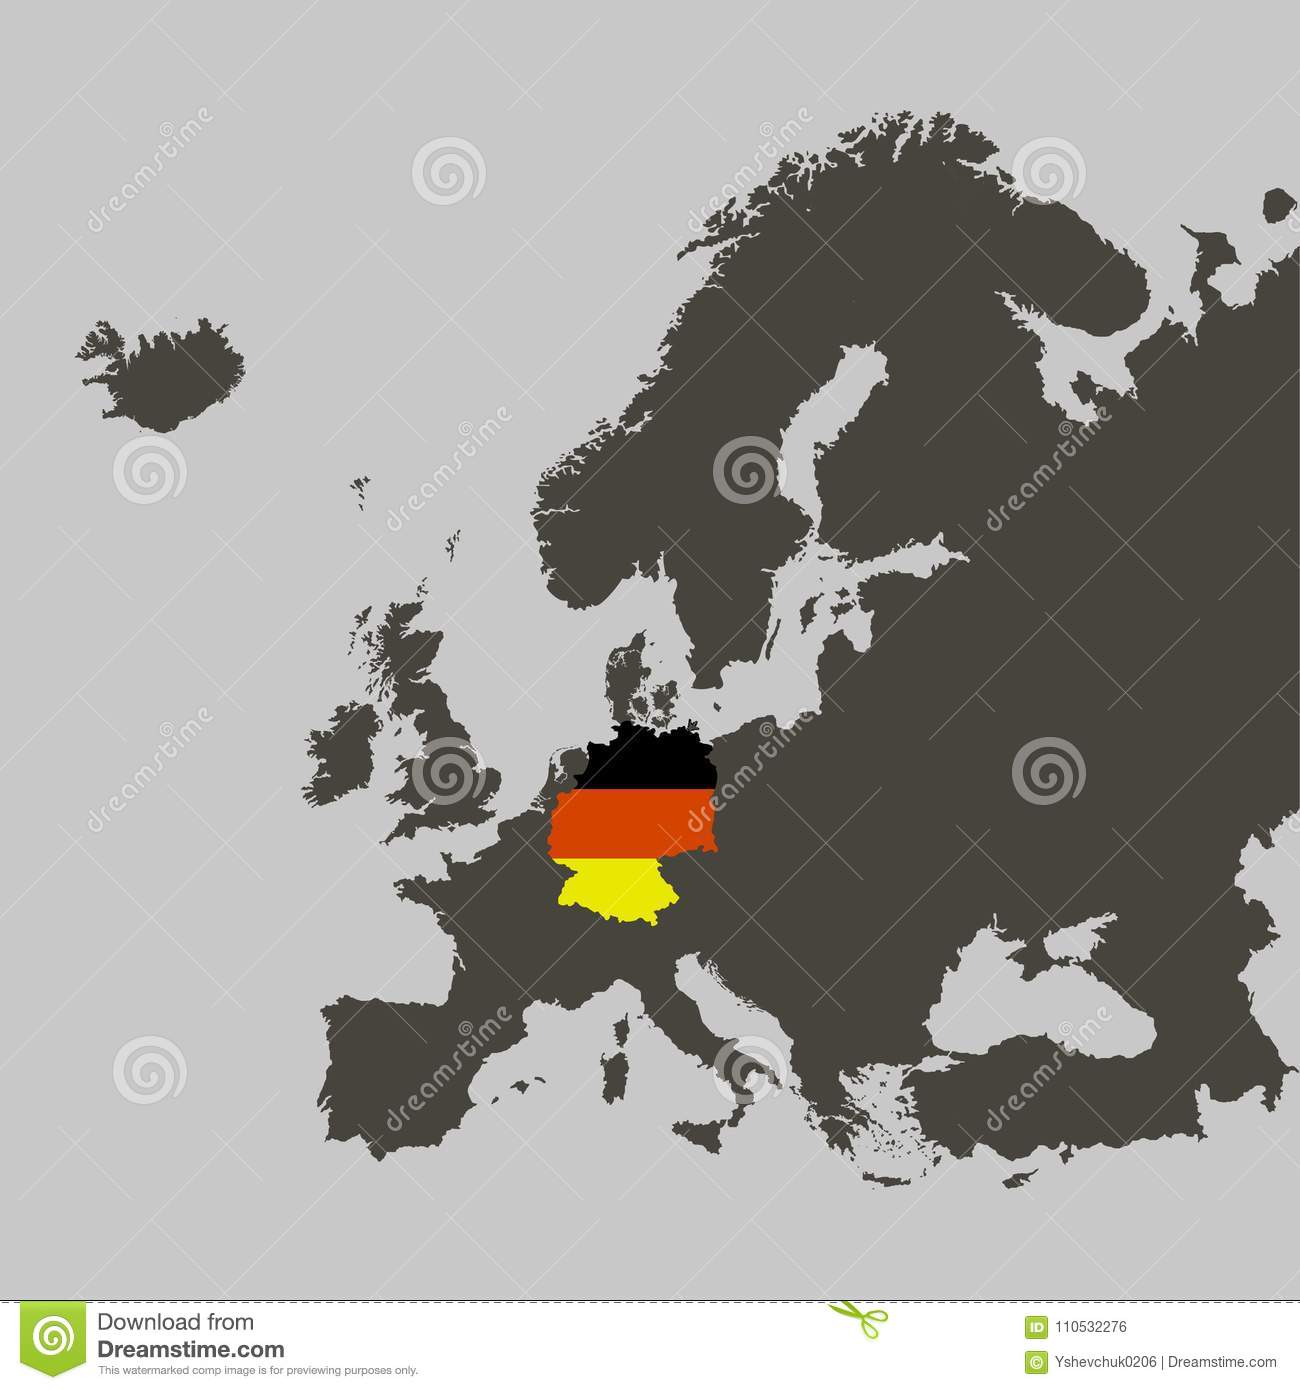 Territory Of Germany With Flag On Europe Map Stock Vector